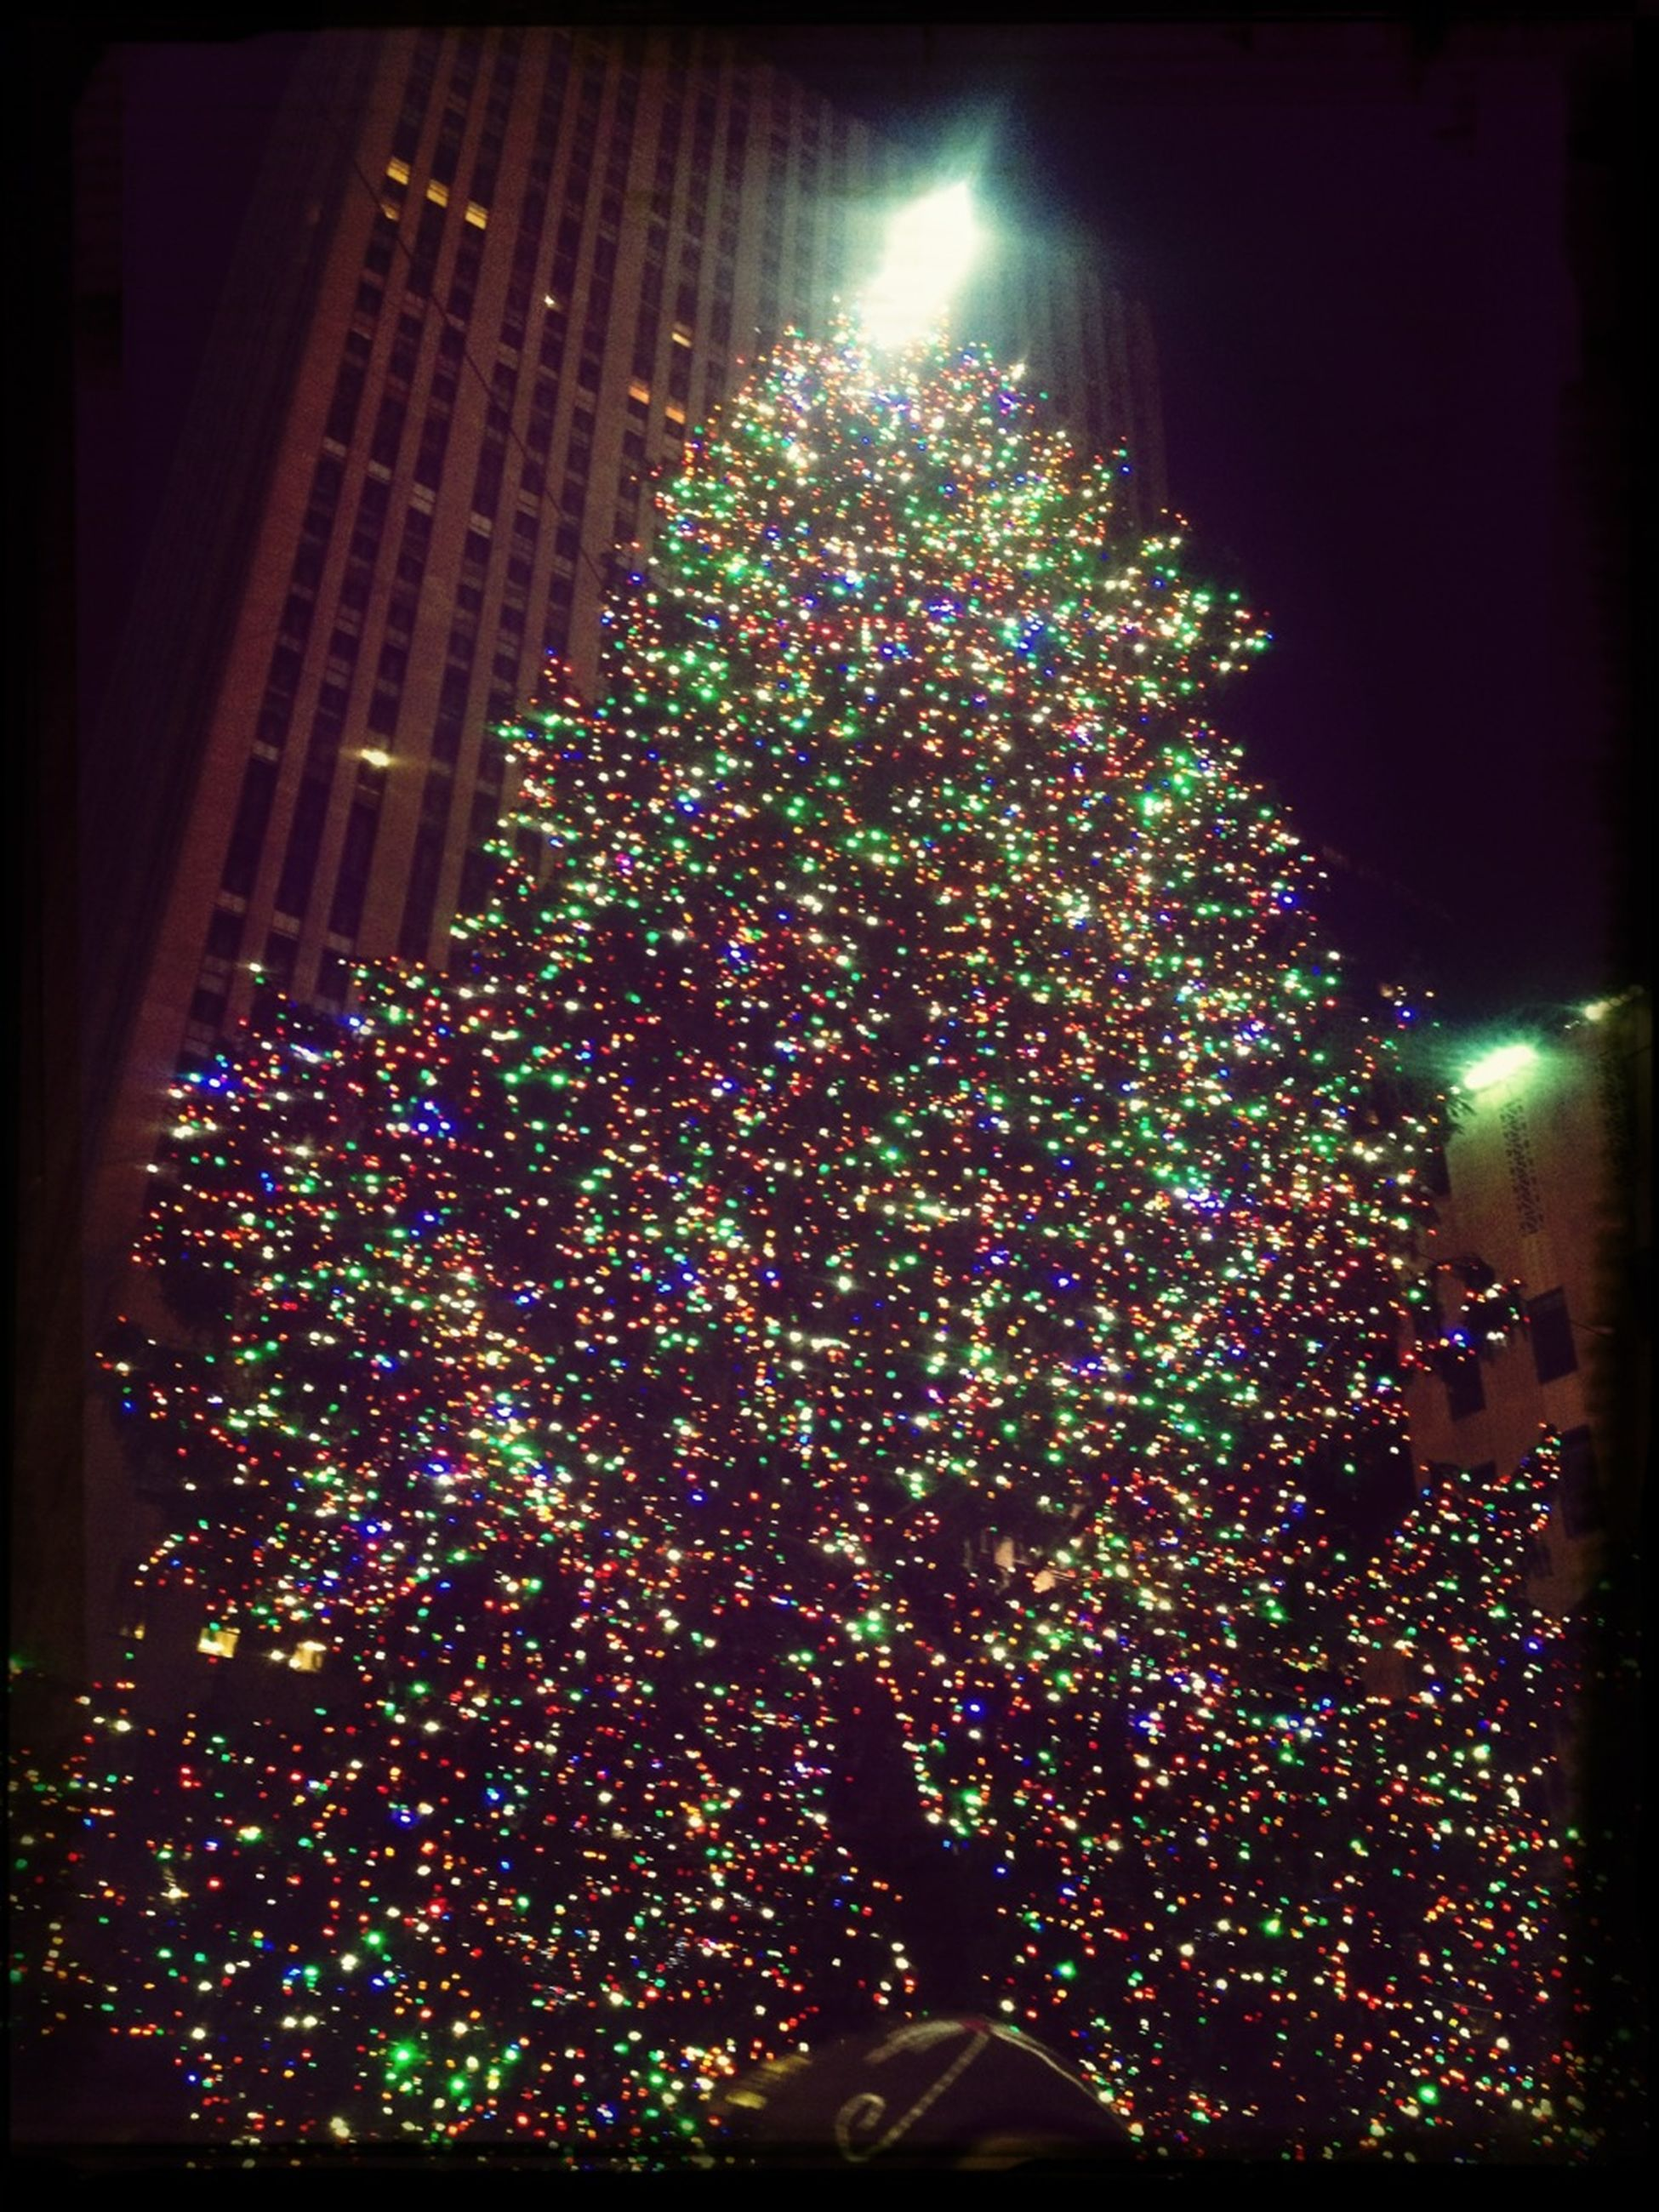 illuminated, night, celebration, christmas, christmas tree, christmas decoration, decoration, lighting equipment, christmas lights, building exterior, low angle view, architecture, built structure, tradition, decor, glowing, multi colored, tree, light - natural phenomenon, firework - man made object